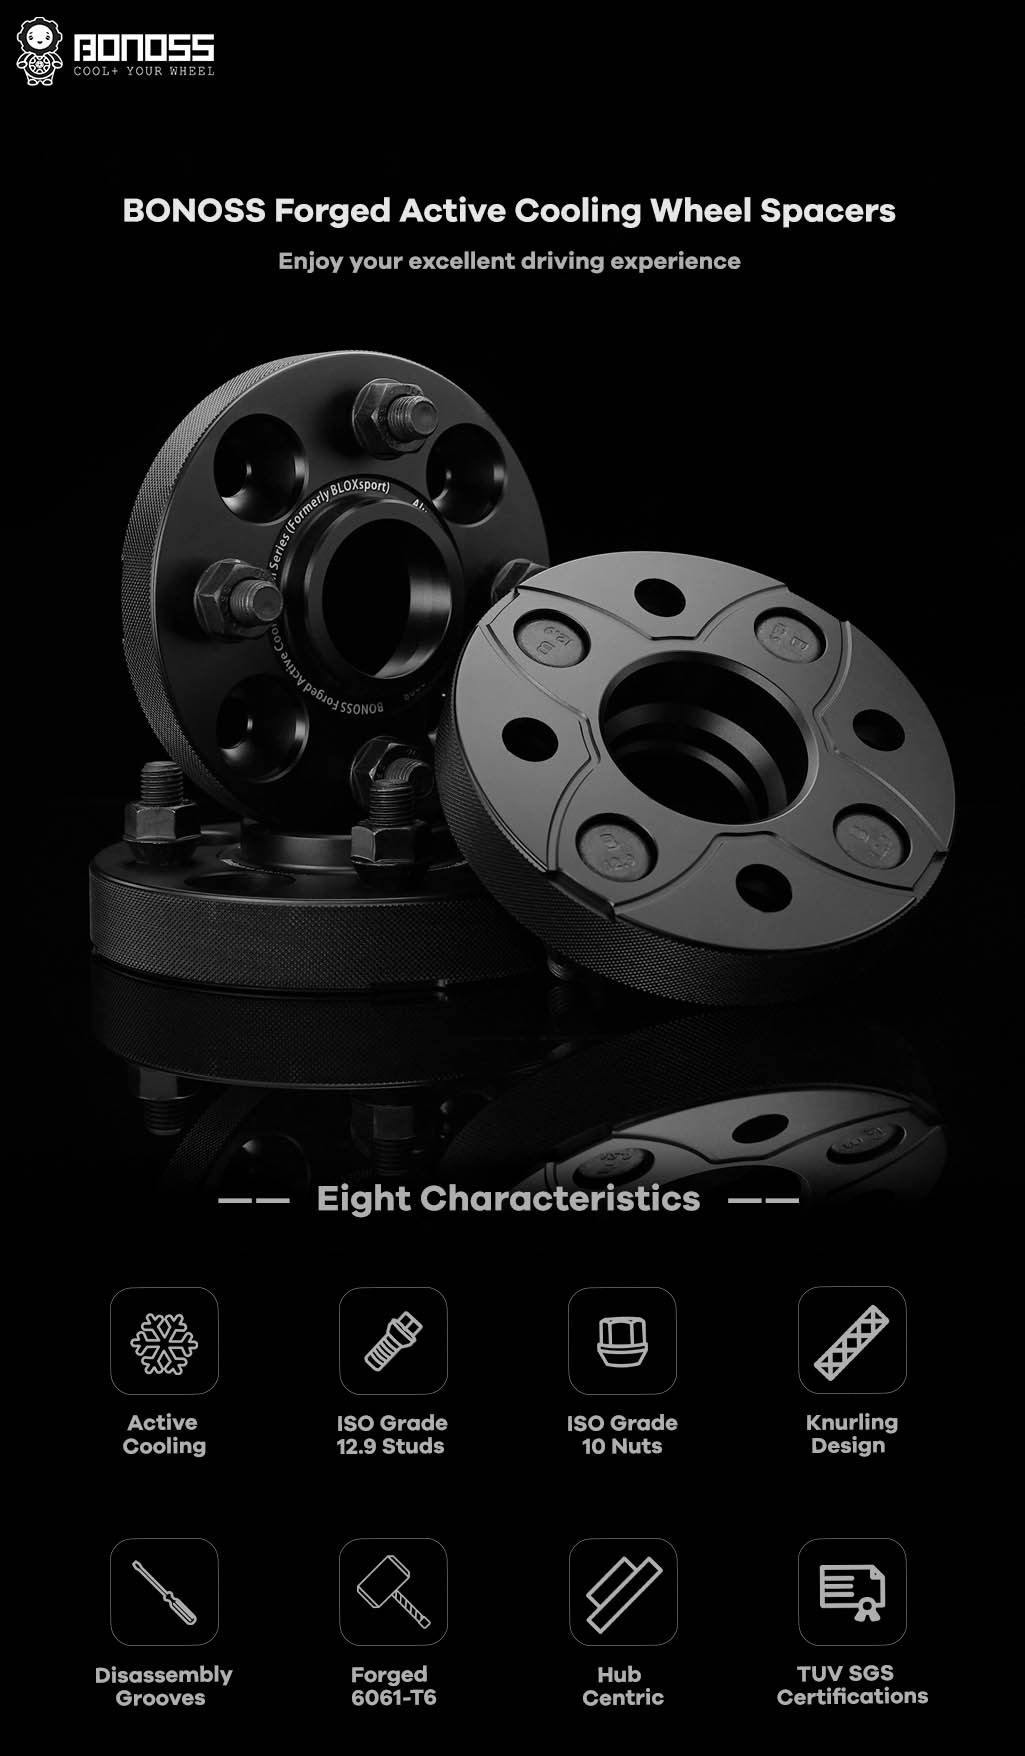 AL6061-T6 BONOSS-forged-active-cooling-hubcentric 4x100 wheel-spacer-by-lulu-1